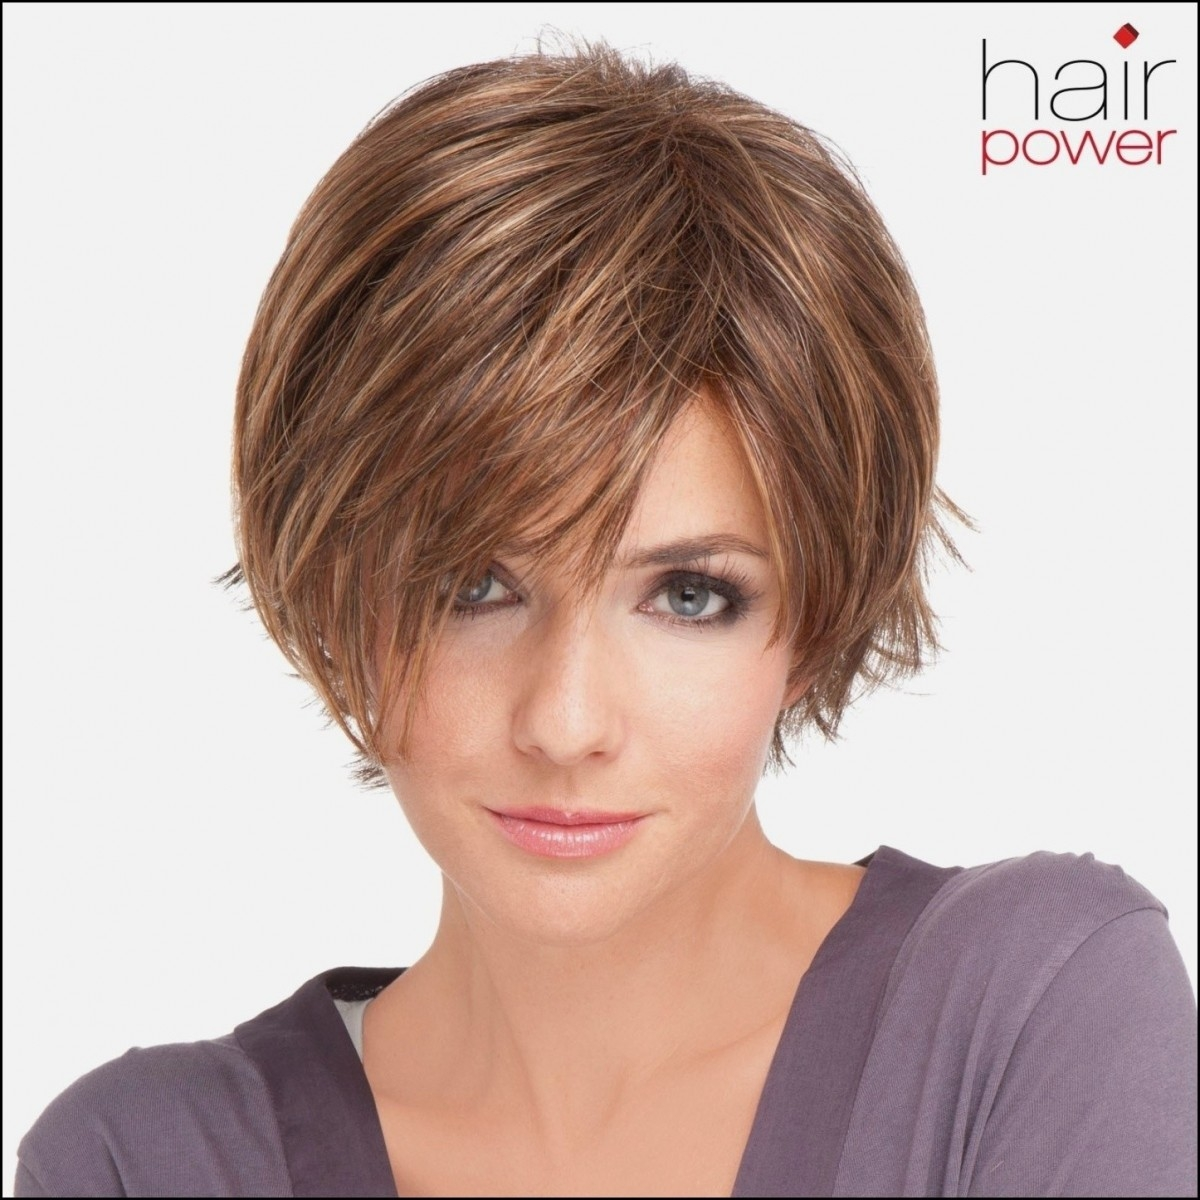 Chic-Short-Bob-Hairstyles-And-Haircuts-16 Totally Chic Short Bob Hairstyles And Haircuts for Every Woman